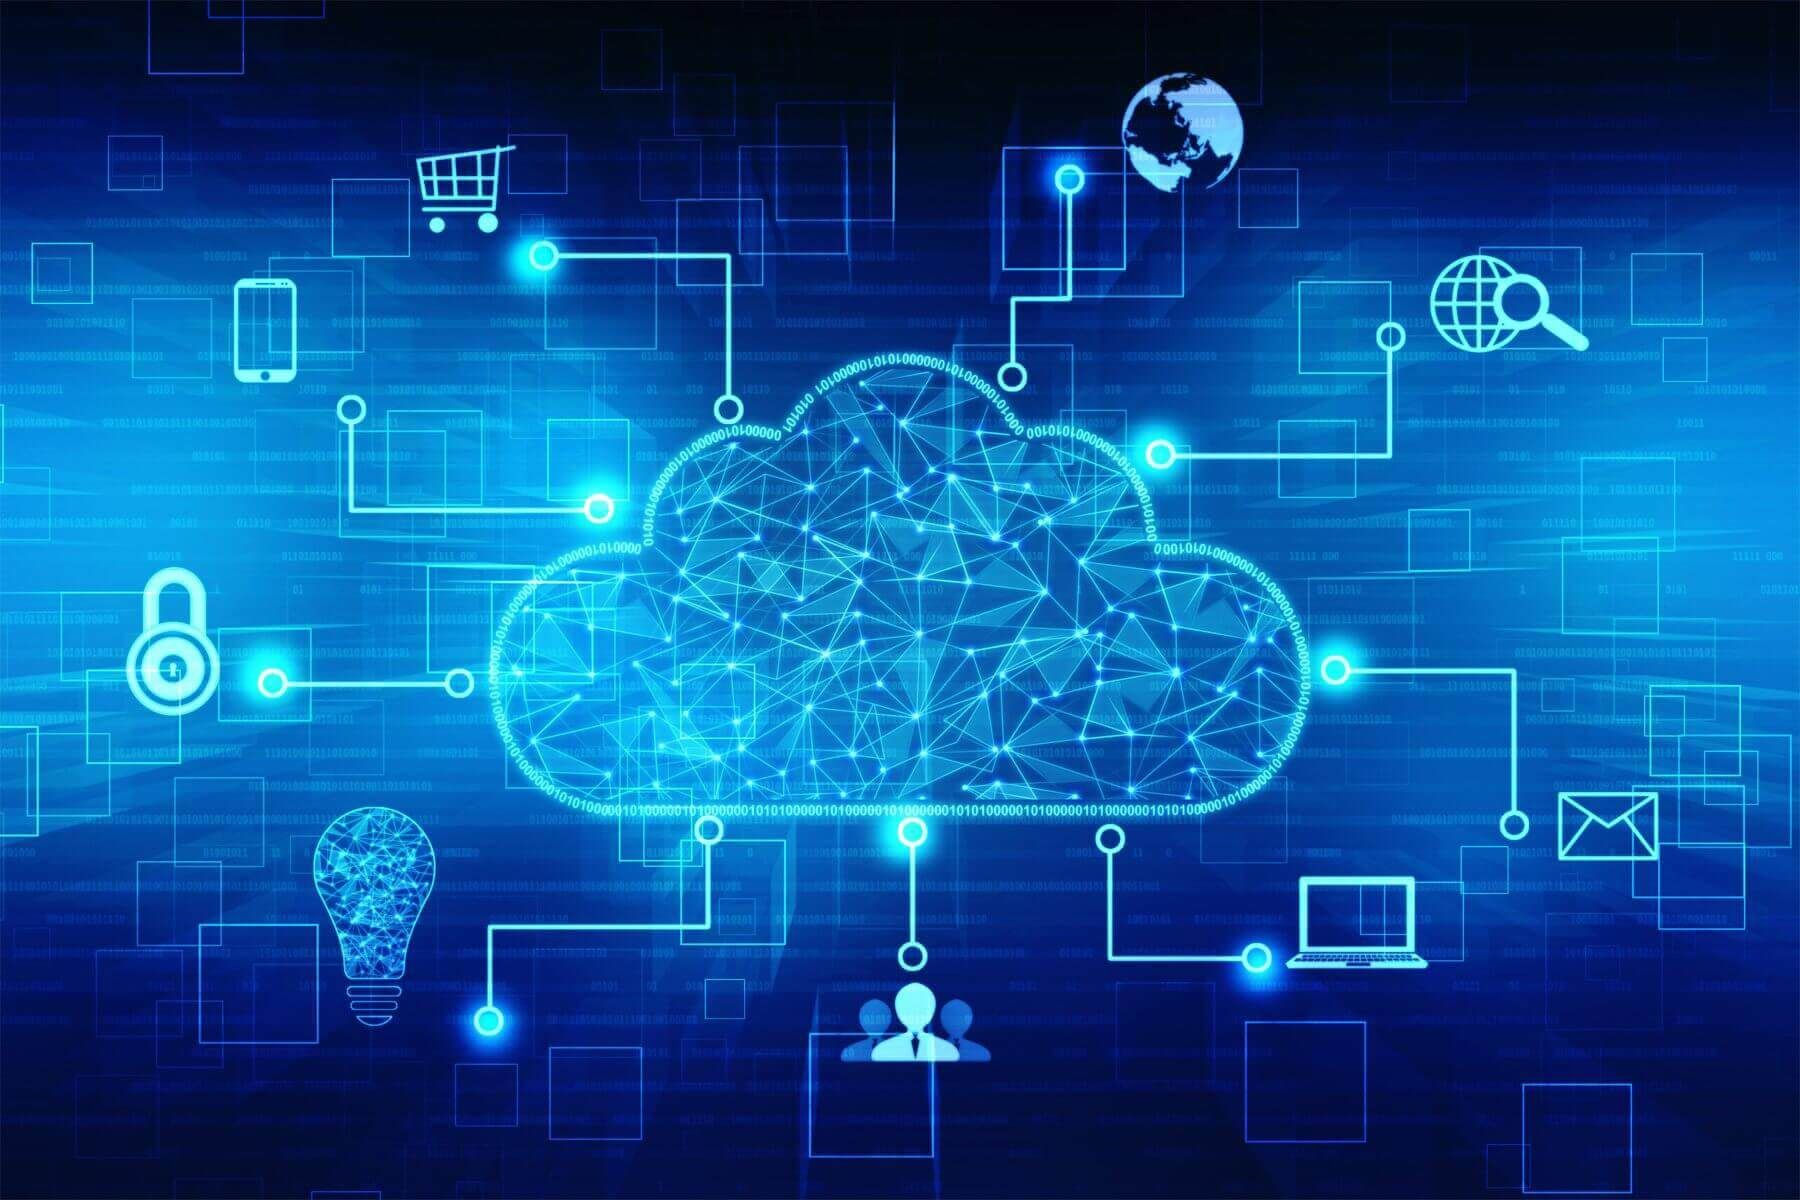 We provide Cloud Computing in Switzerland that has the